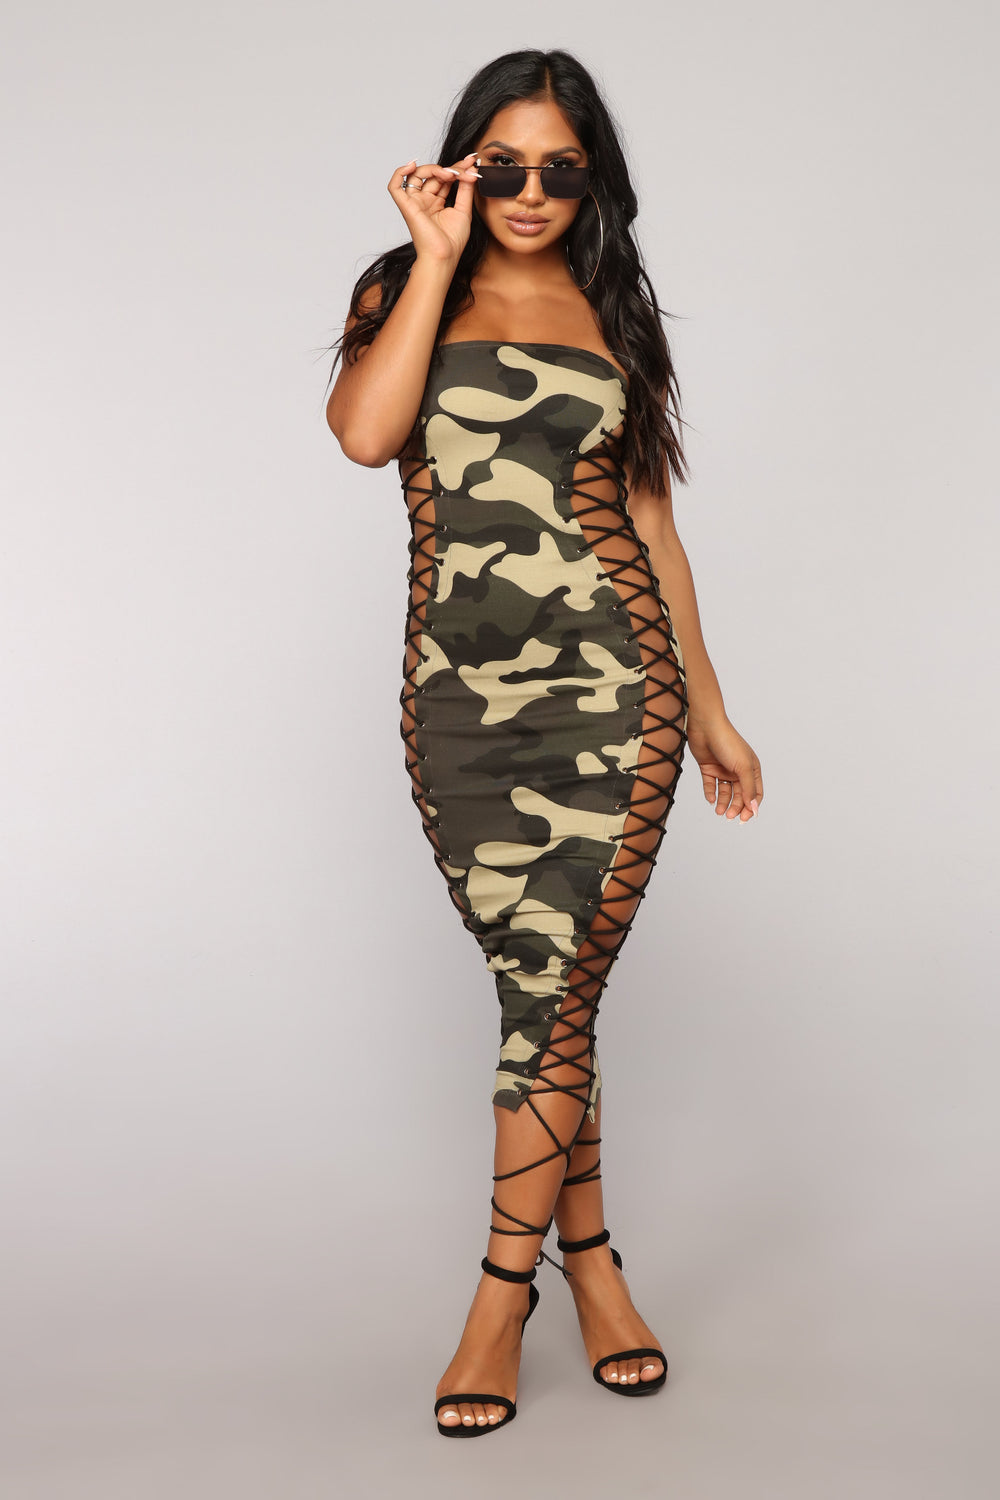 Too Hot For You Camo Dress - Olive Camo